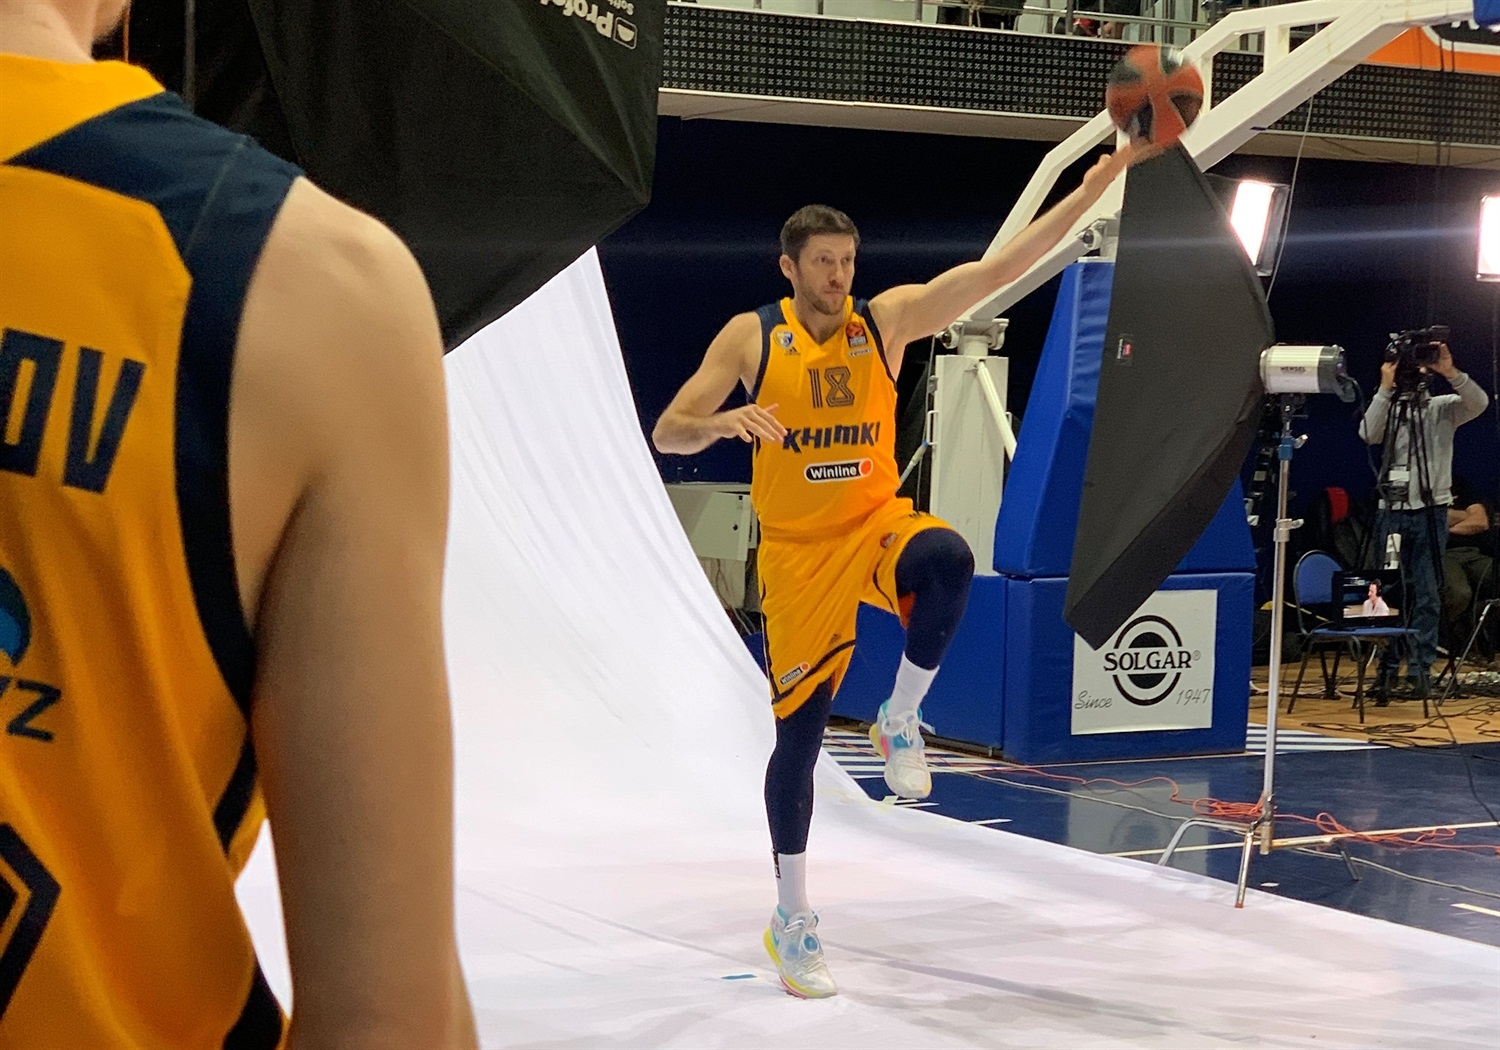 Evgeny Voronov - Khimki Moscow Region Media day 2020 - EB20